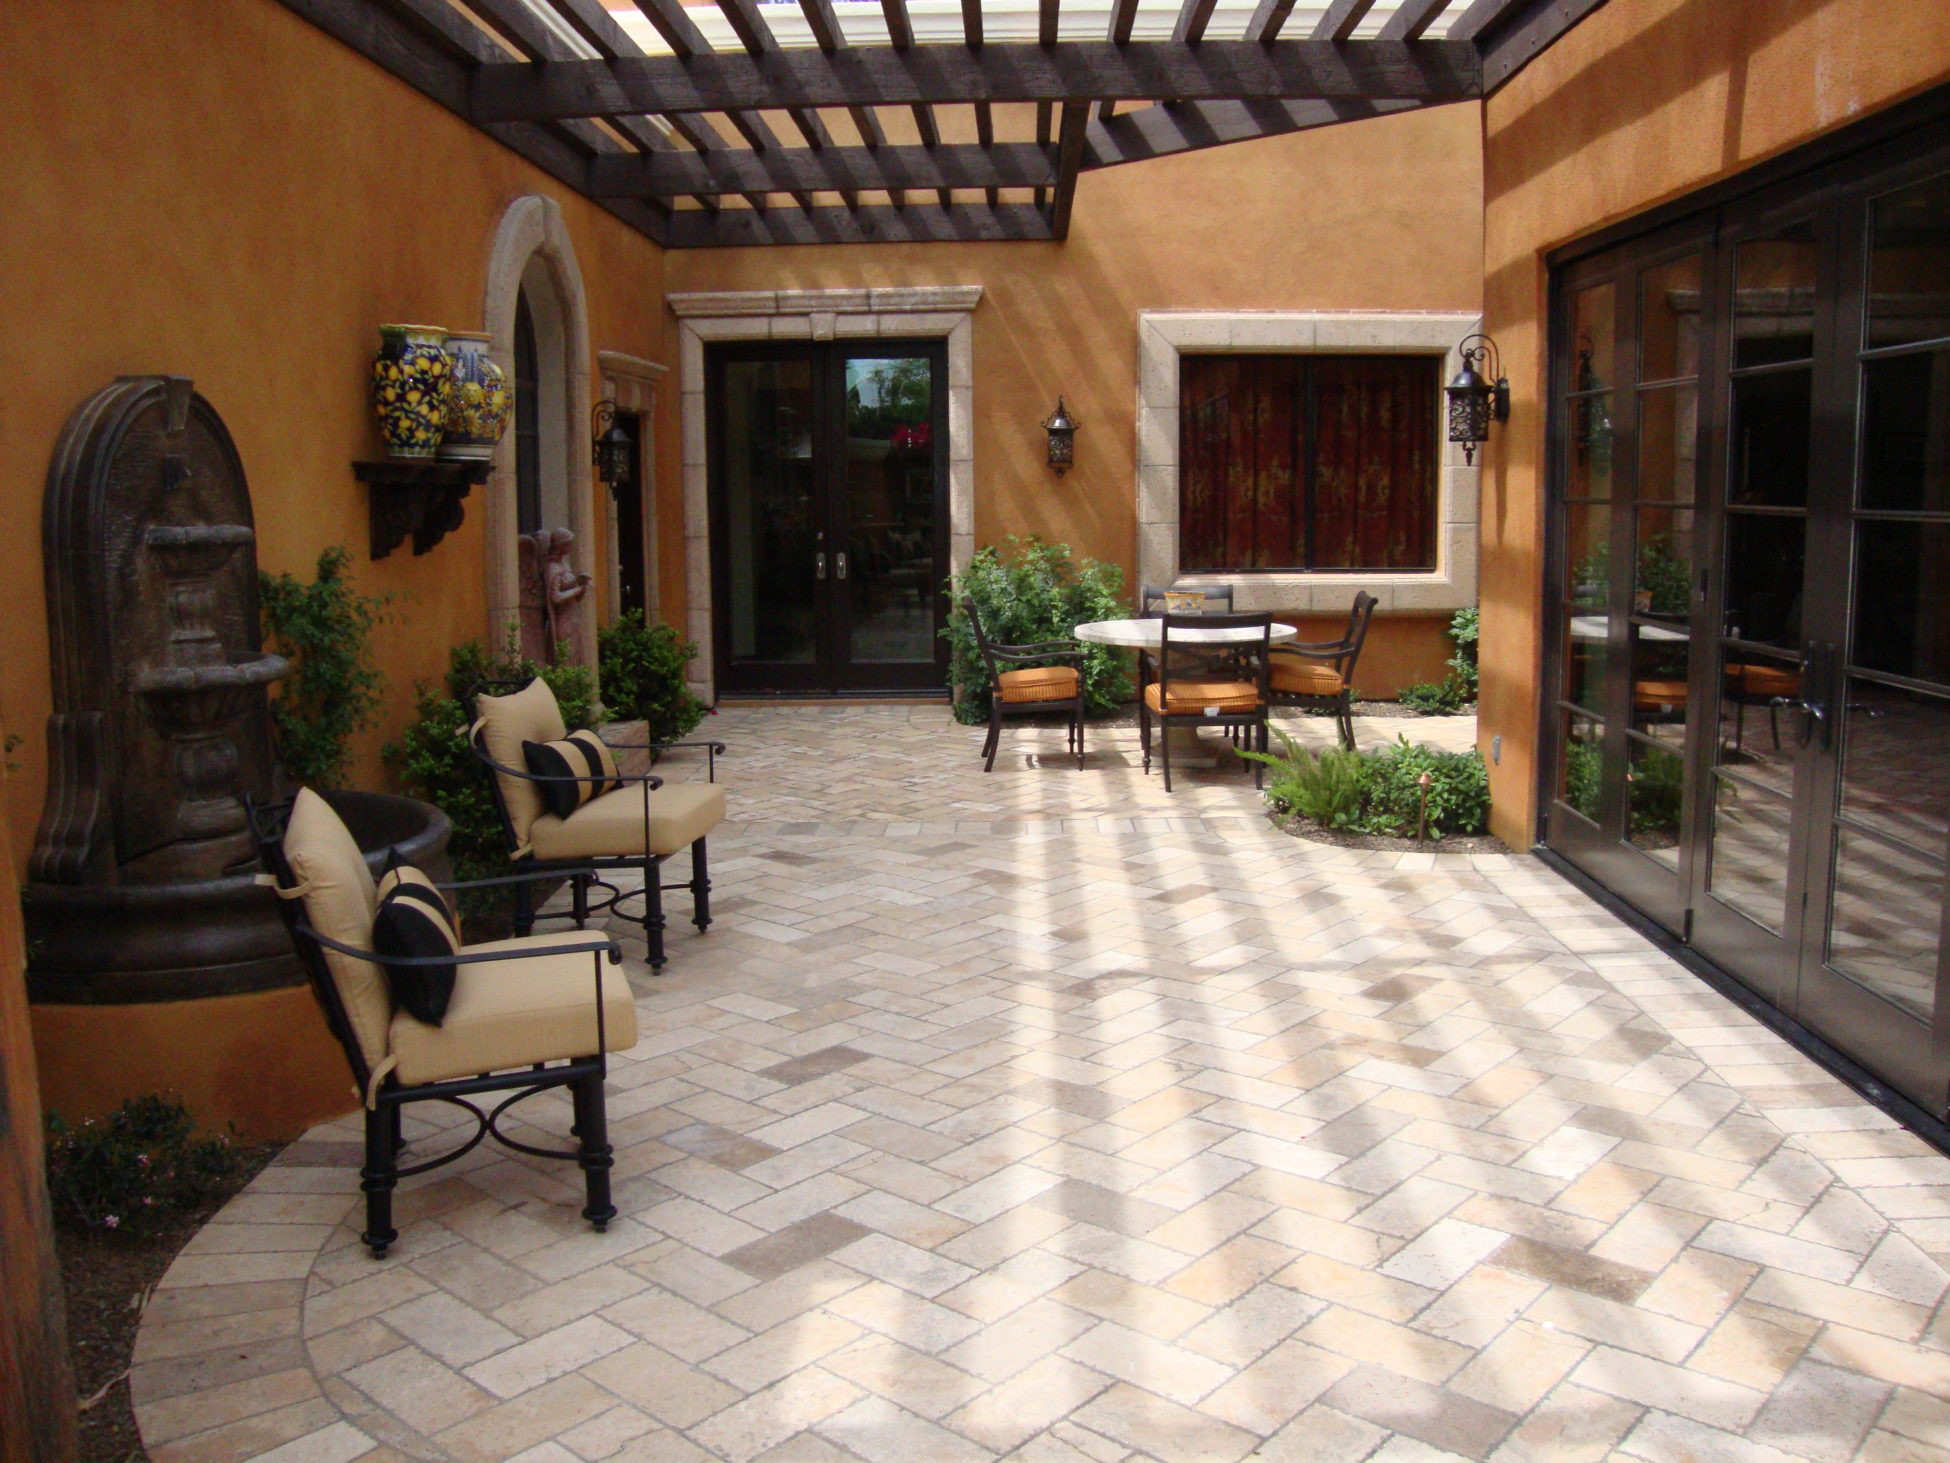 Outdoor Landscape Pavers  Paver Designs and Paver Ideas for Your Backyard Patios